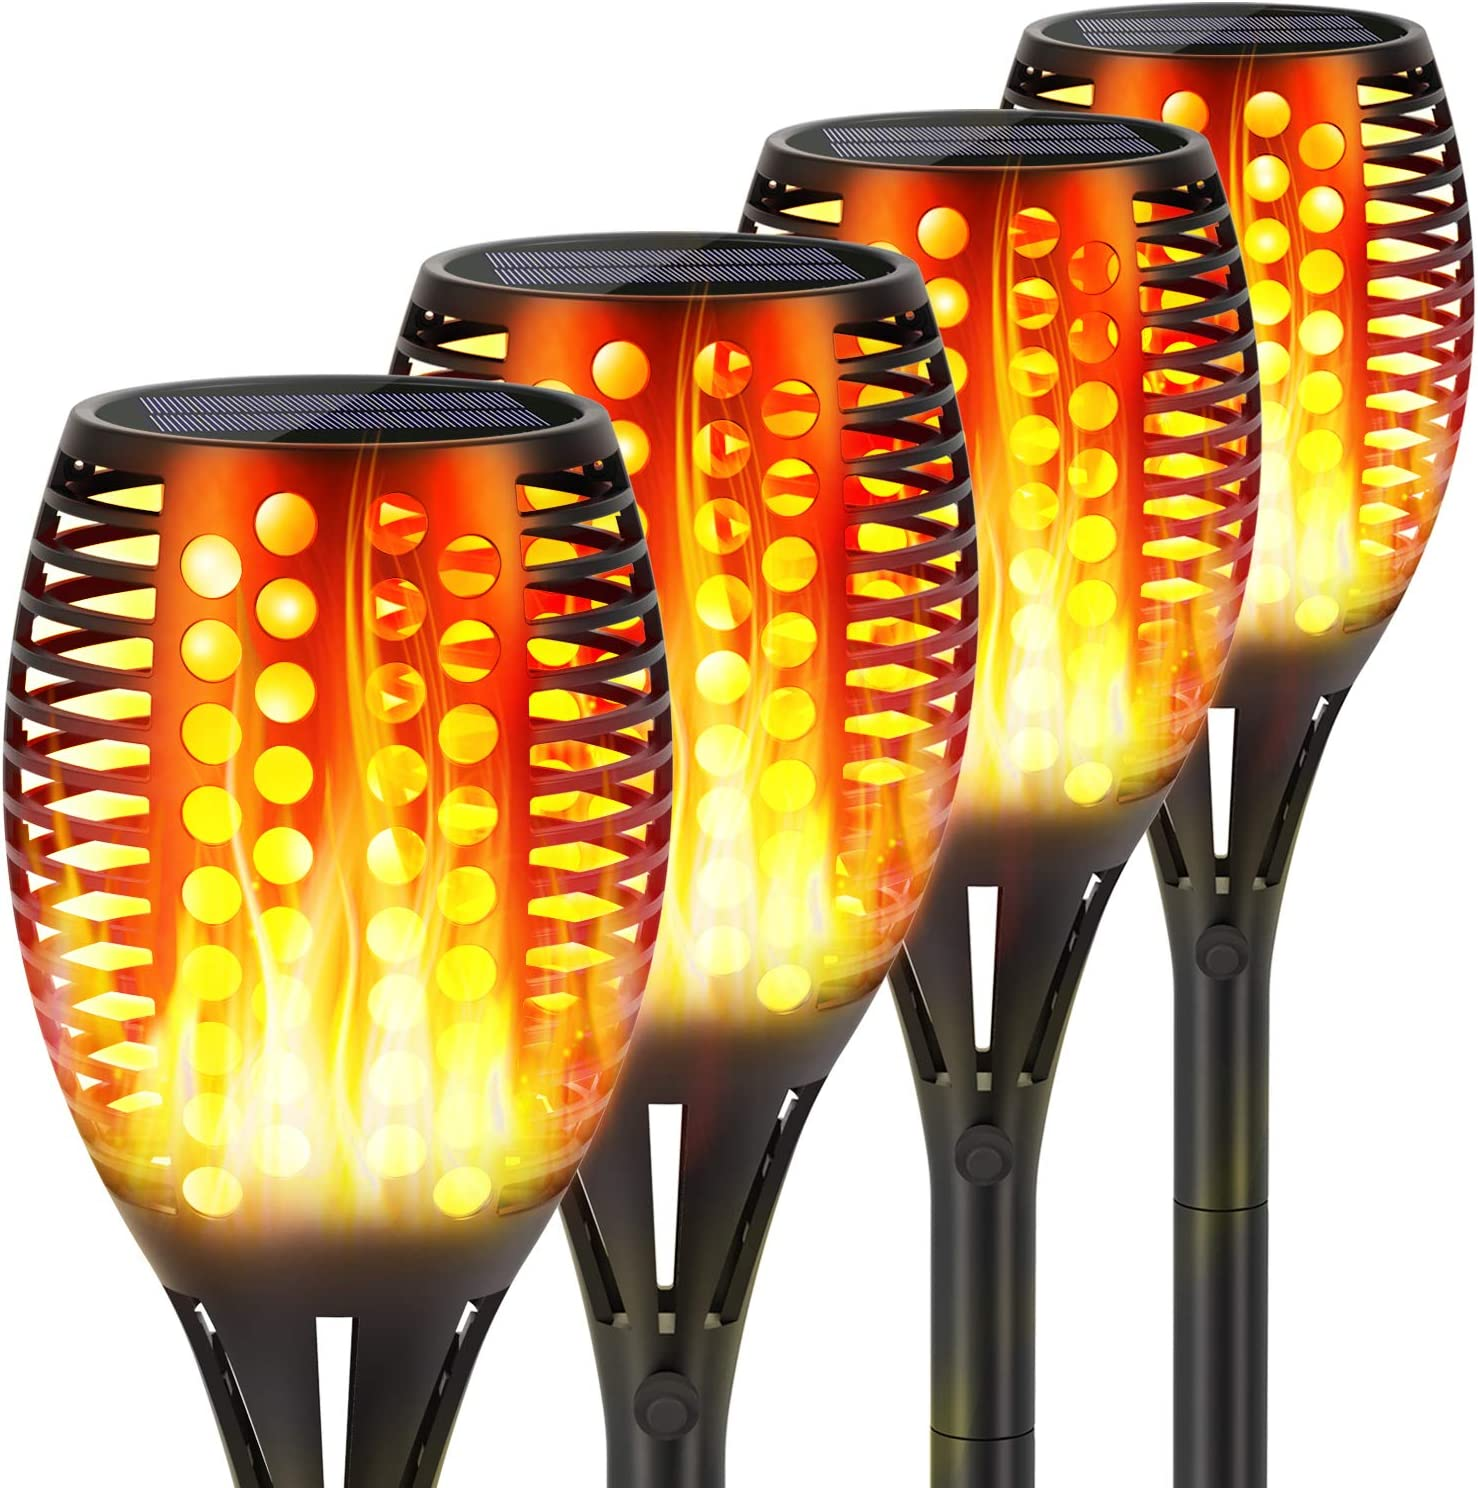 Upgraded Solar Torch Lights, Super Bright LED Waterproof Flickering Dancing Flames Torches Light Outdoor Solar Landscape Decoration Lighting Dusk to Dawn Auto On/Off Path Lamp (4 Pack-Circle)